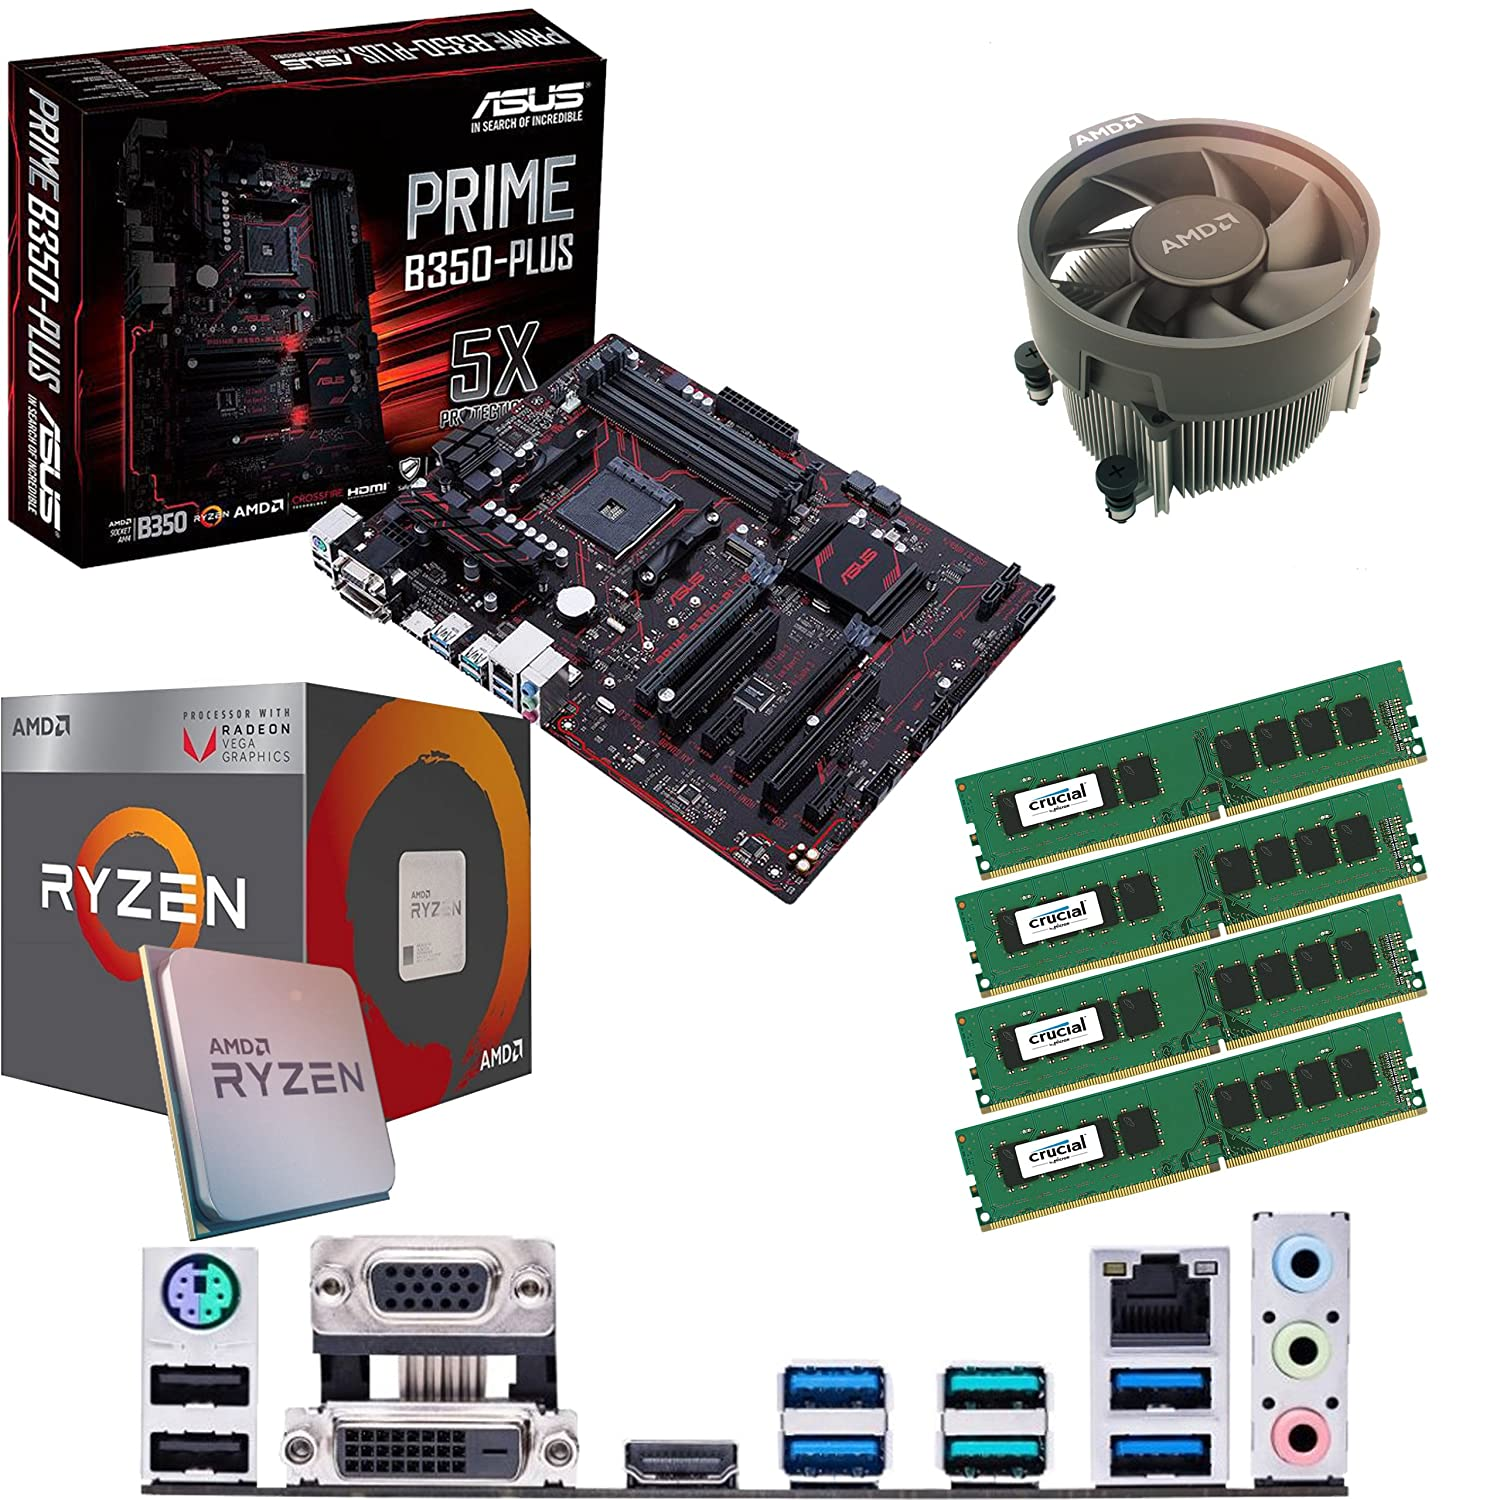 Components4All AMD Ryzen 5 2400G 3 6Ghz (Turbo 3 9Ghz) Quad Core Eight  Thread CPU, ASUS Prime B350-PLUS Motherboard & 8GB 3000Mhz Corsair DDR4 RAM